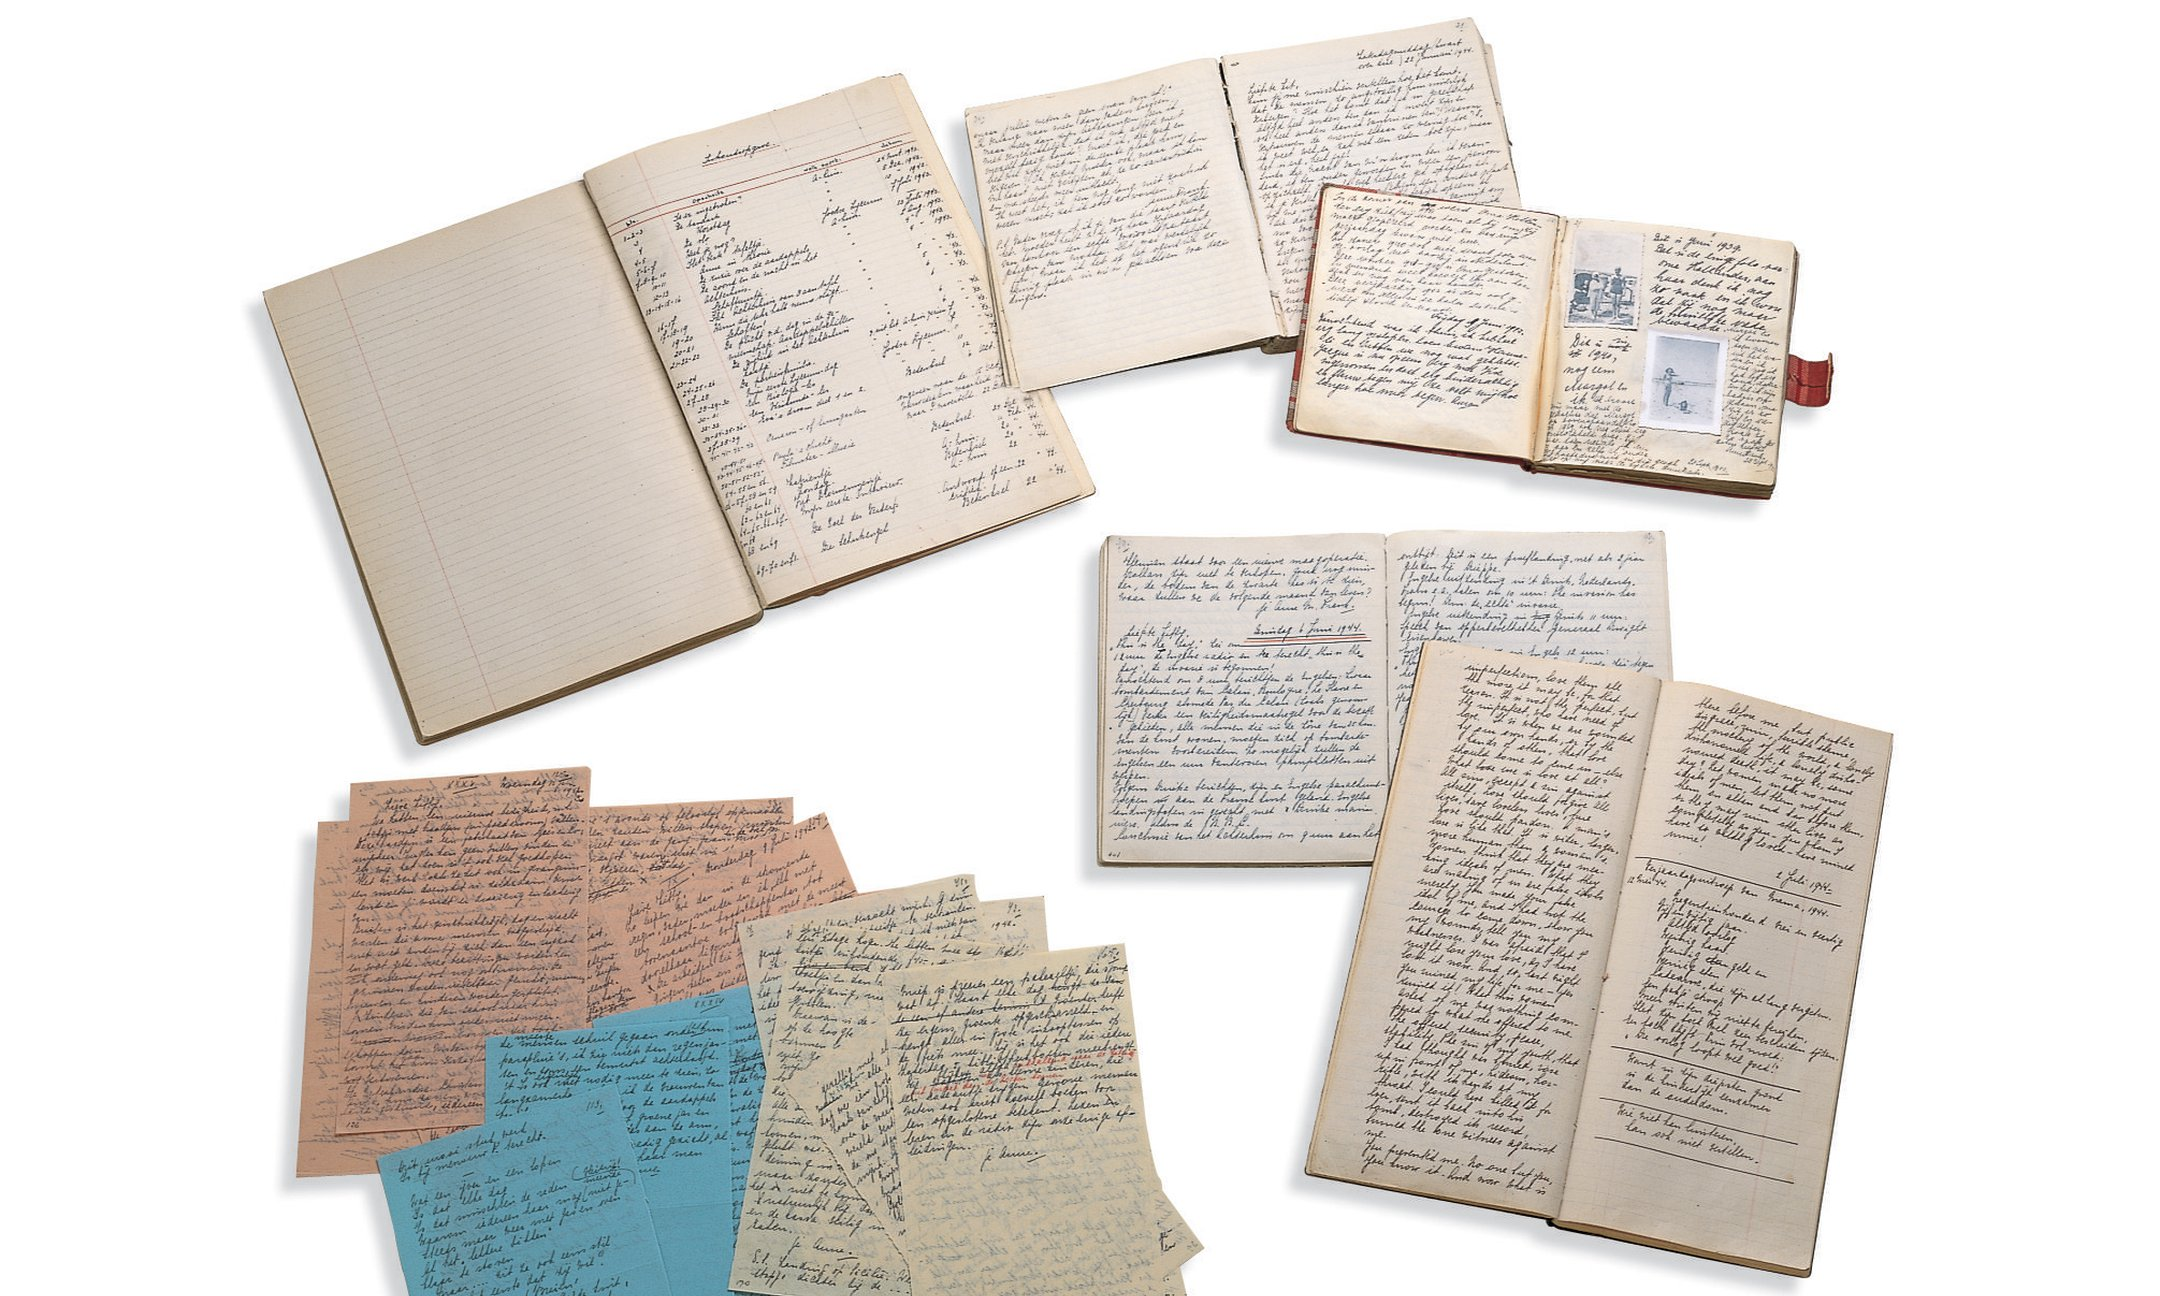 The manuscripts ofAnne Frank